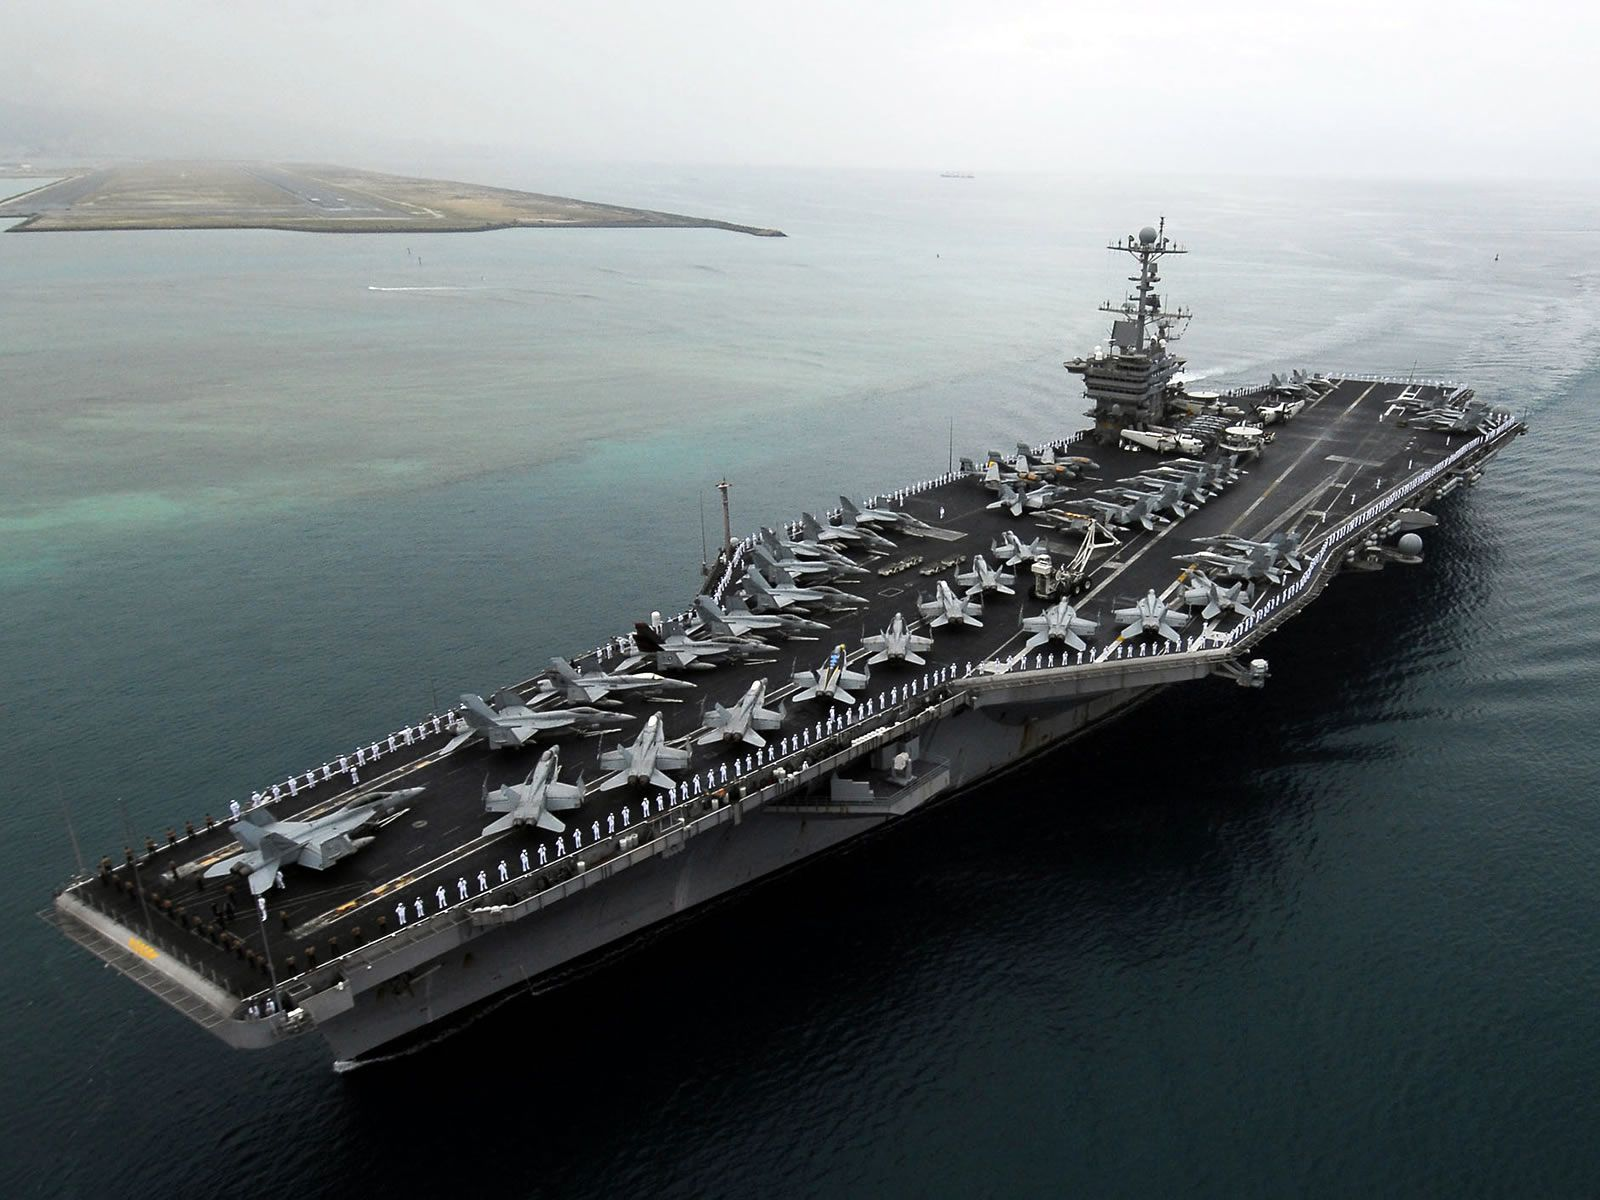 I think aircraft carriers are the bomb!